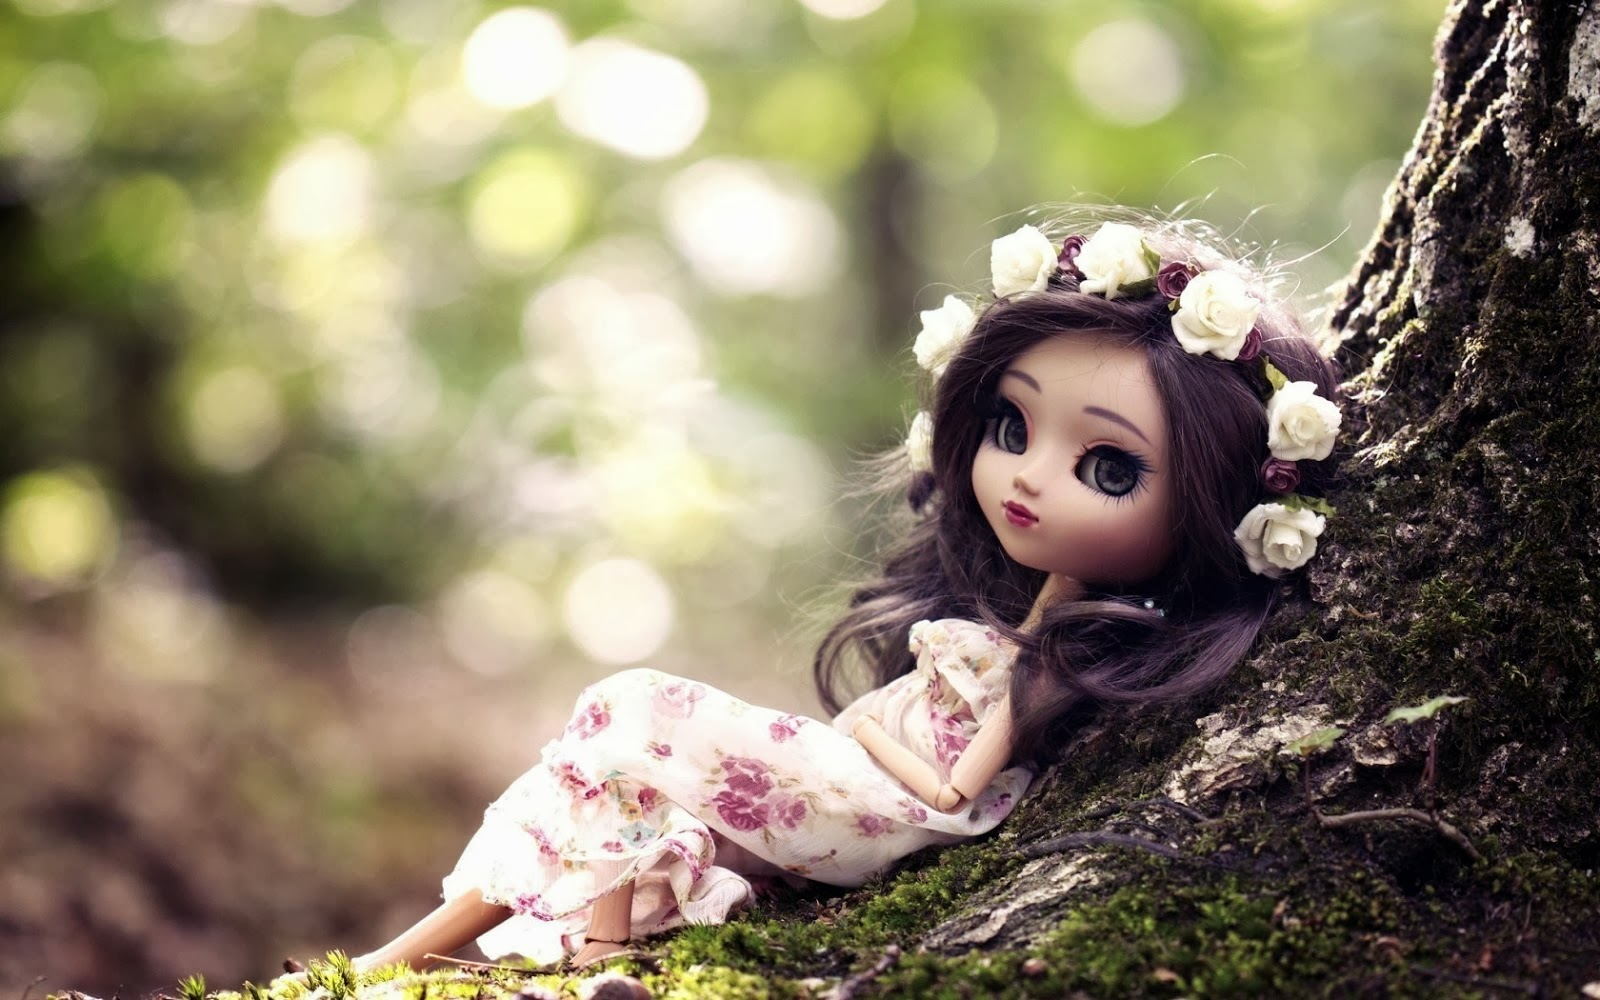 Cute Dolls Wallpapers Pictures, Images & Photos | Photobucket